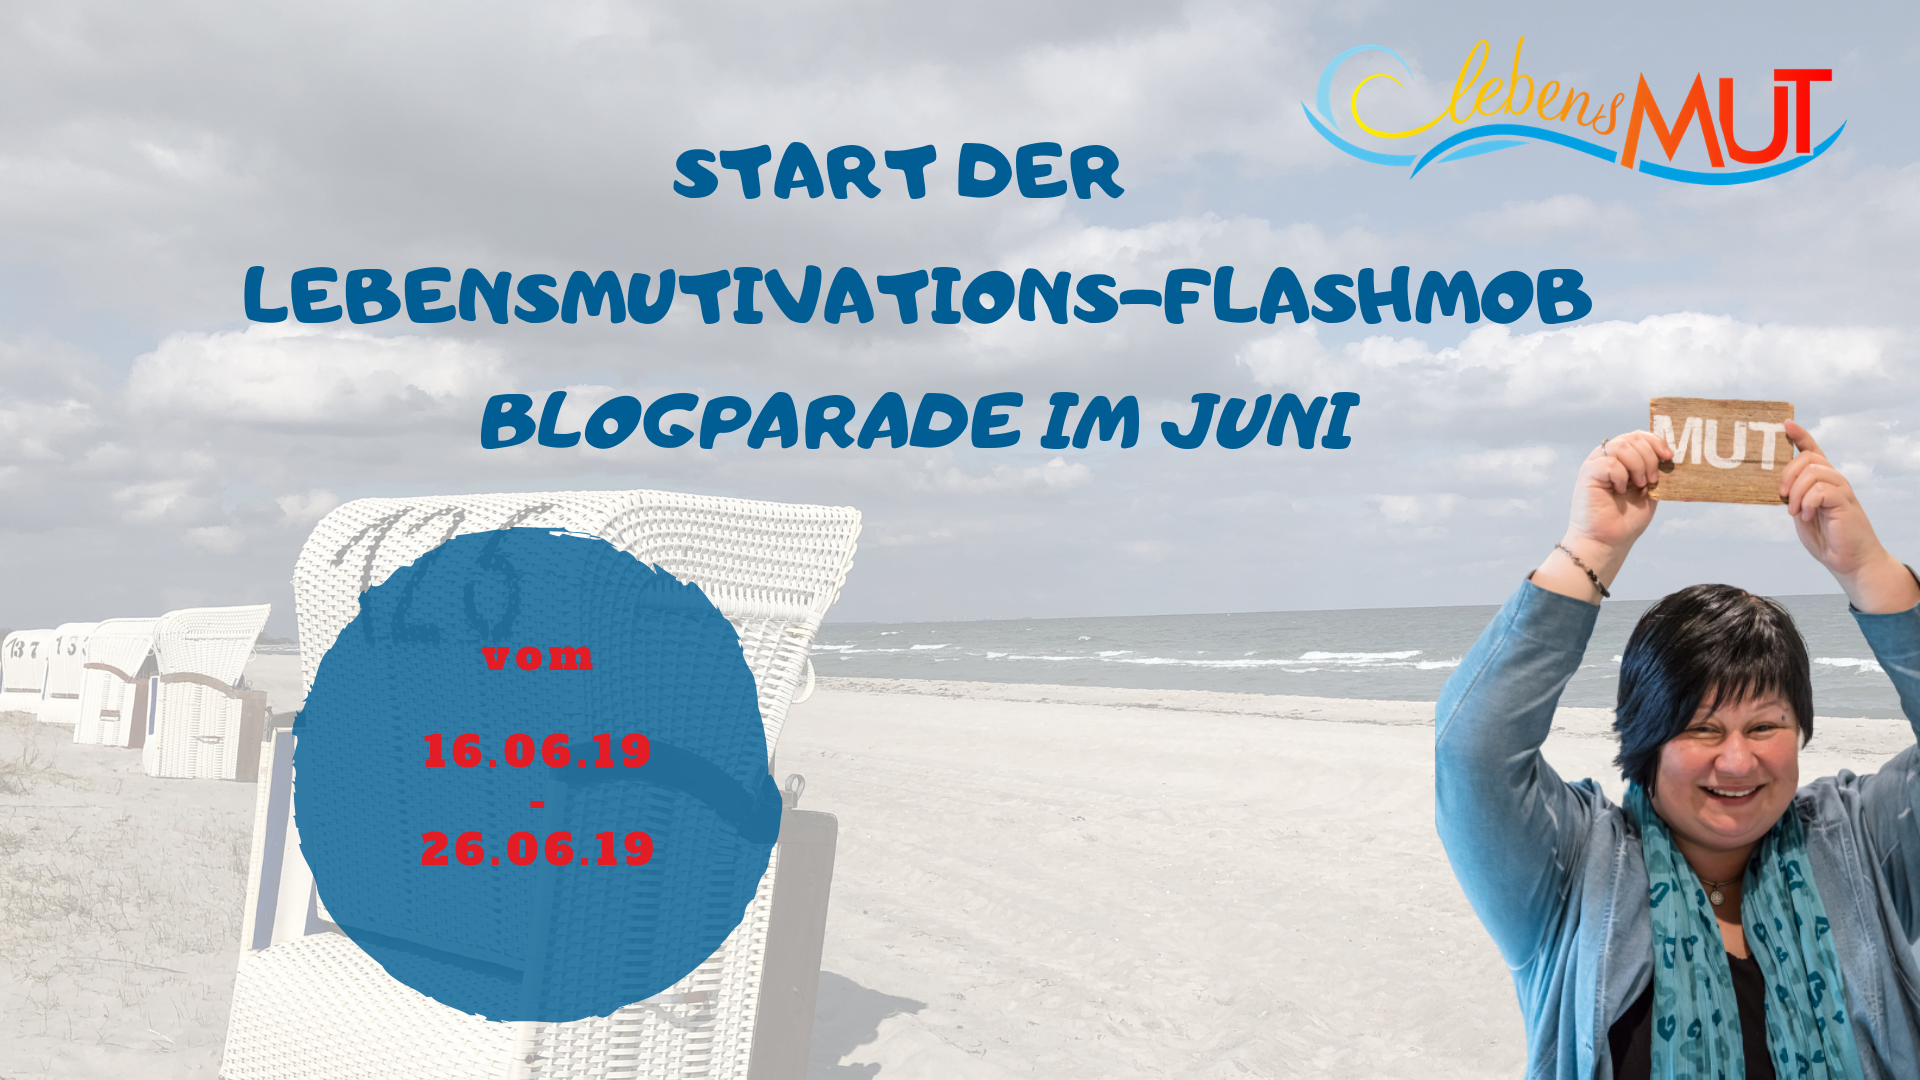 Blogparade LebensMUTivation